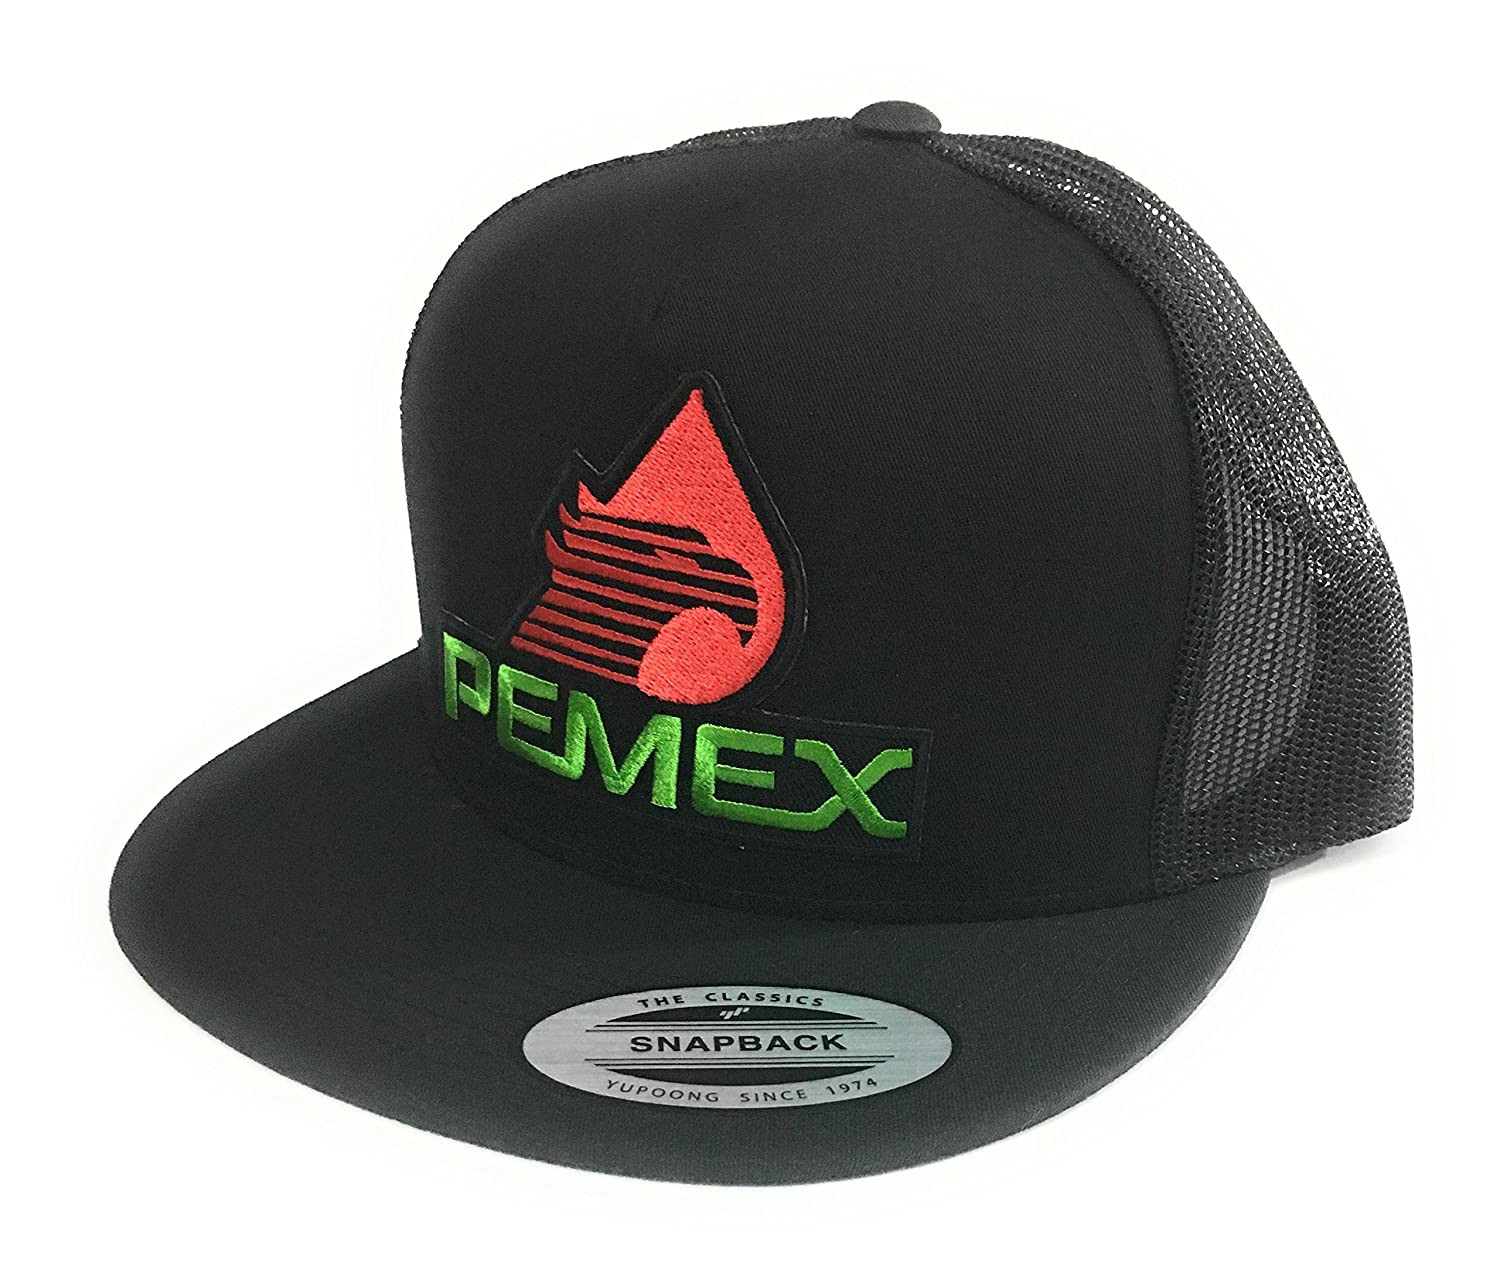 5d66d92dbe717 PEMEX HAT. GORRA FEDERAL MEXICO. SNAP BACK.  Amazon.co.uk  Sports   Outdoors